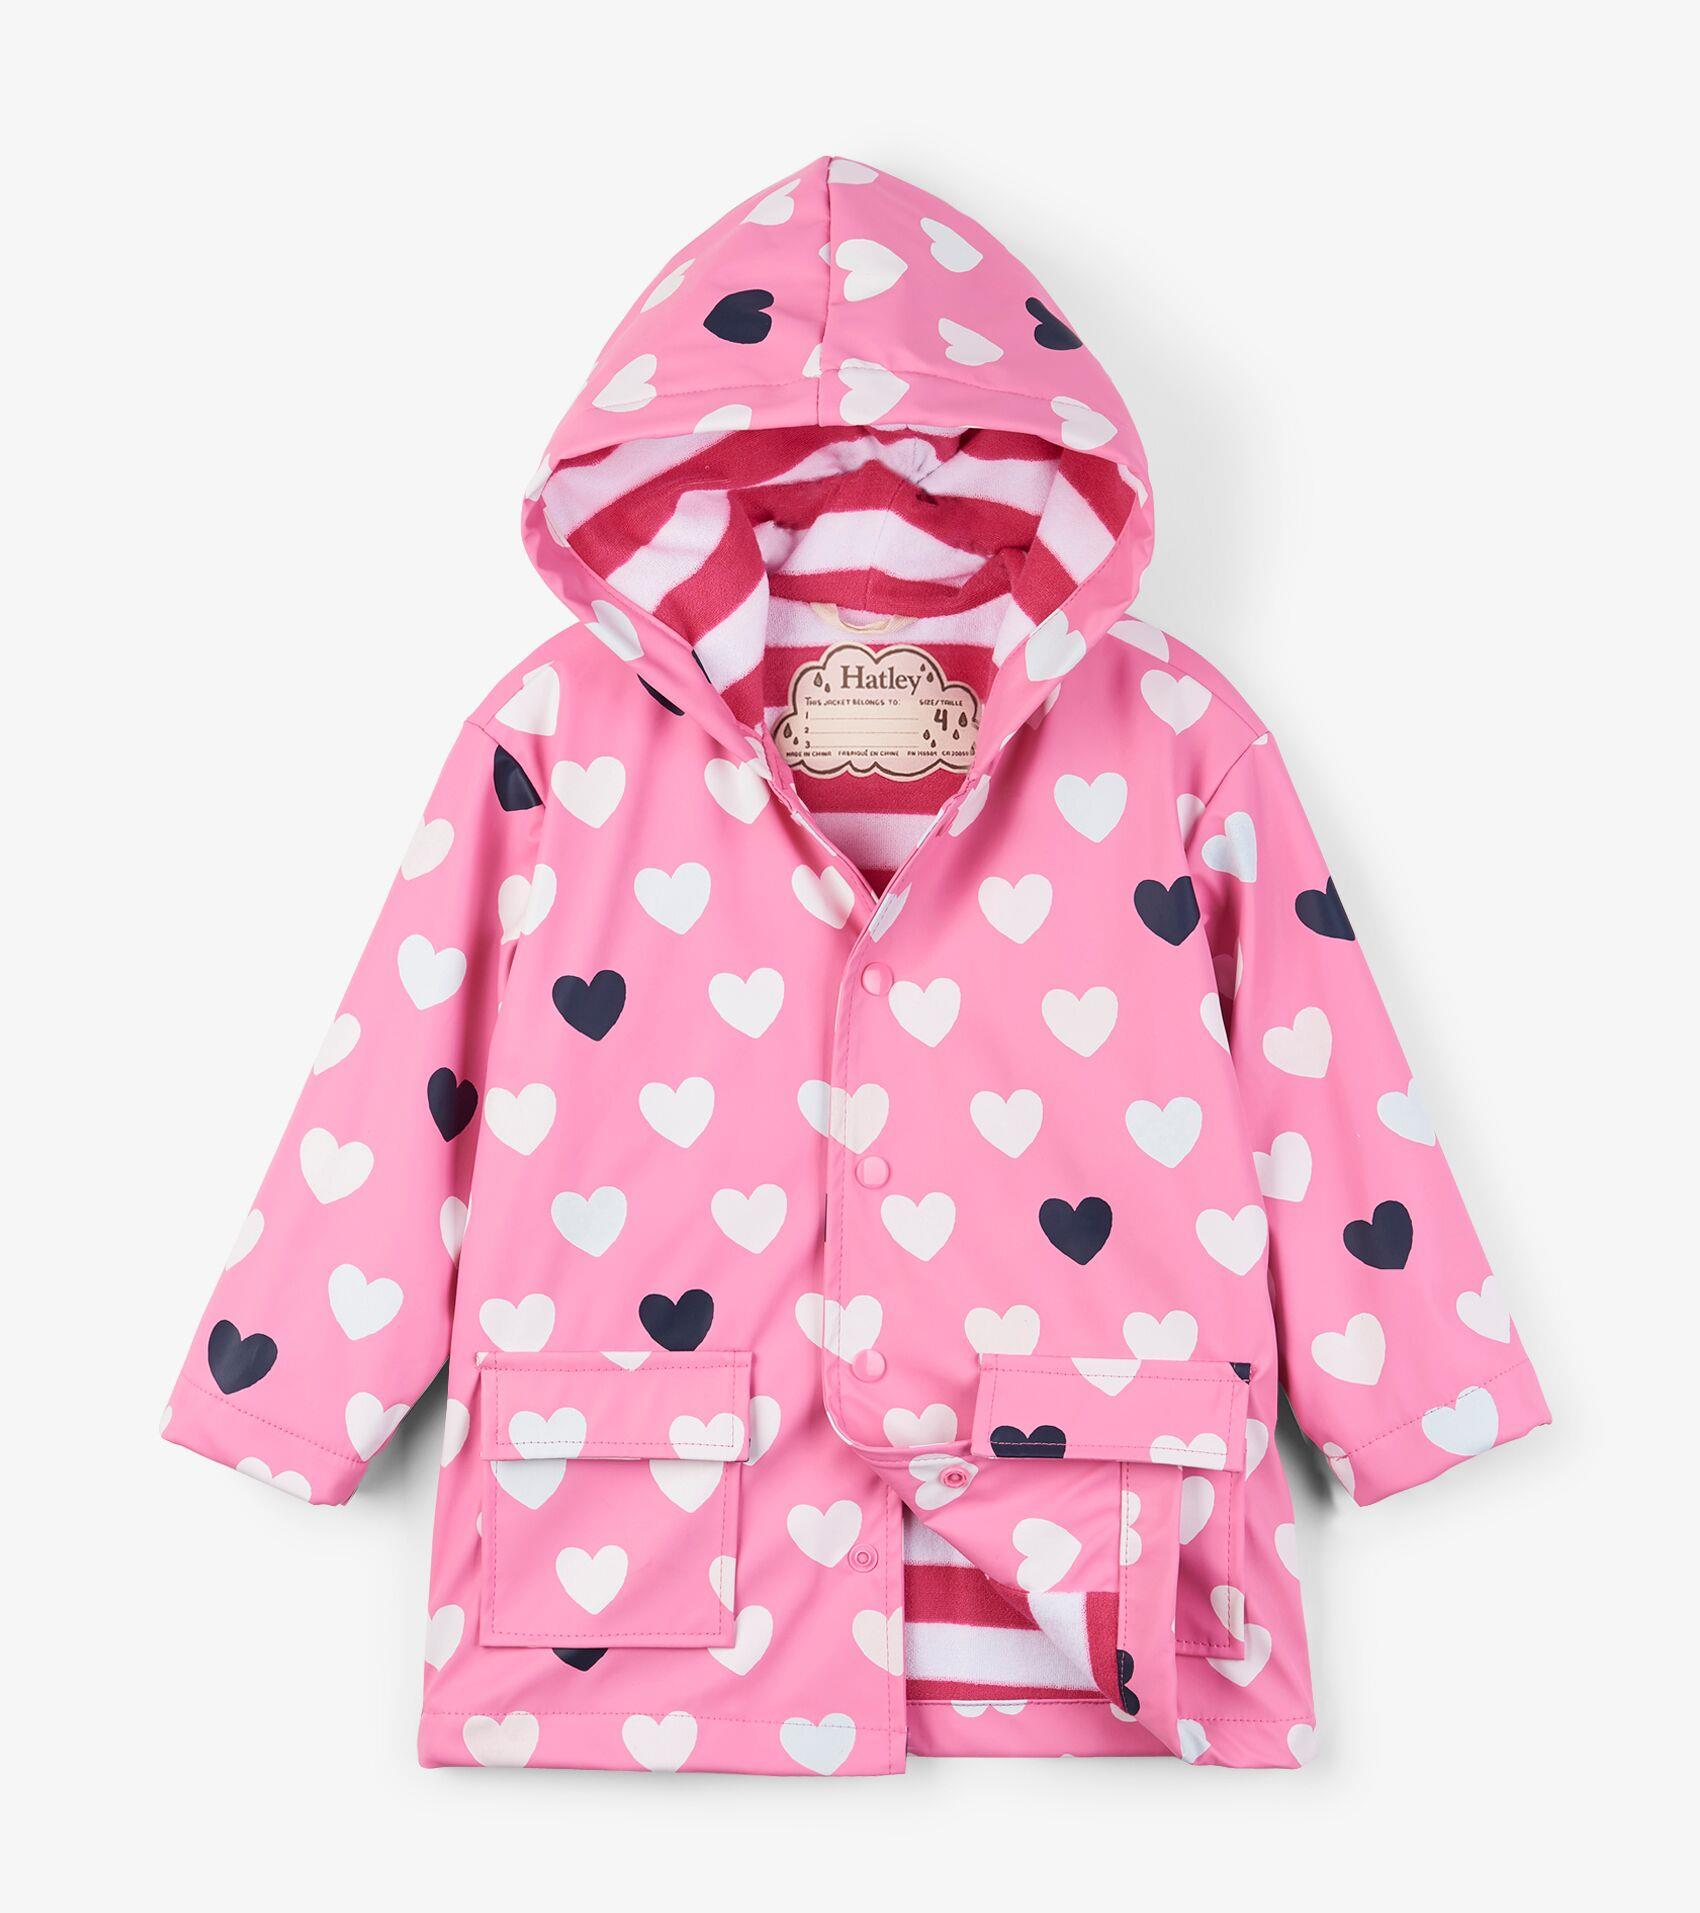 Color Changing Striped Hearts 8 Years Hatley Girls Splash Jacket